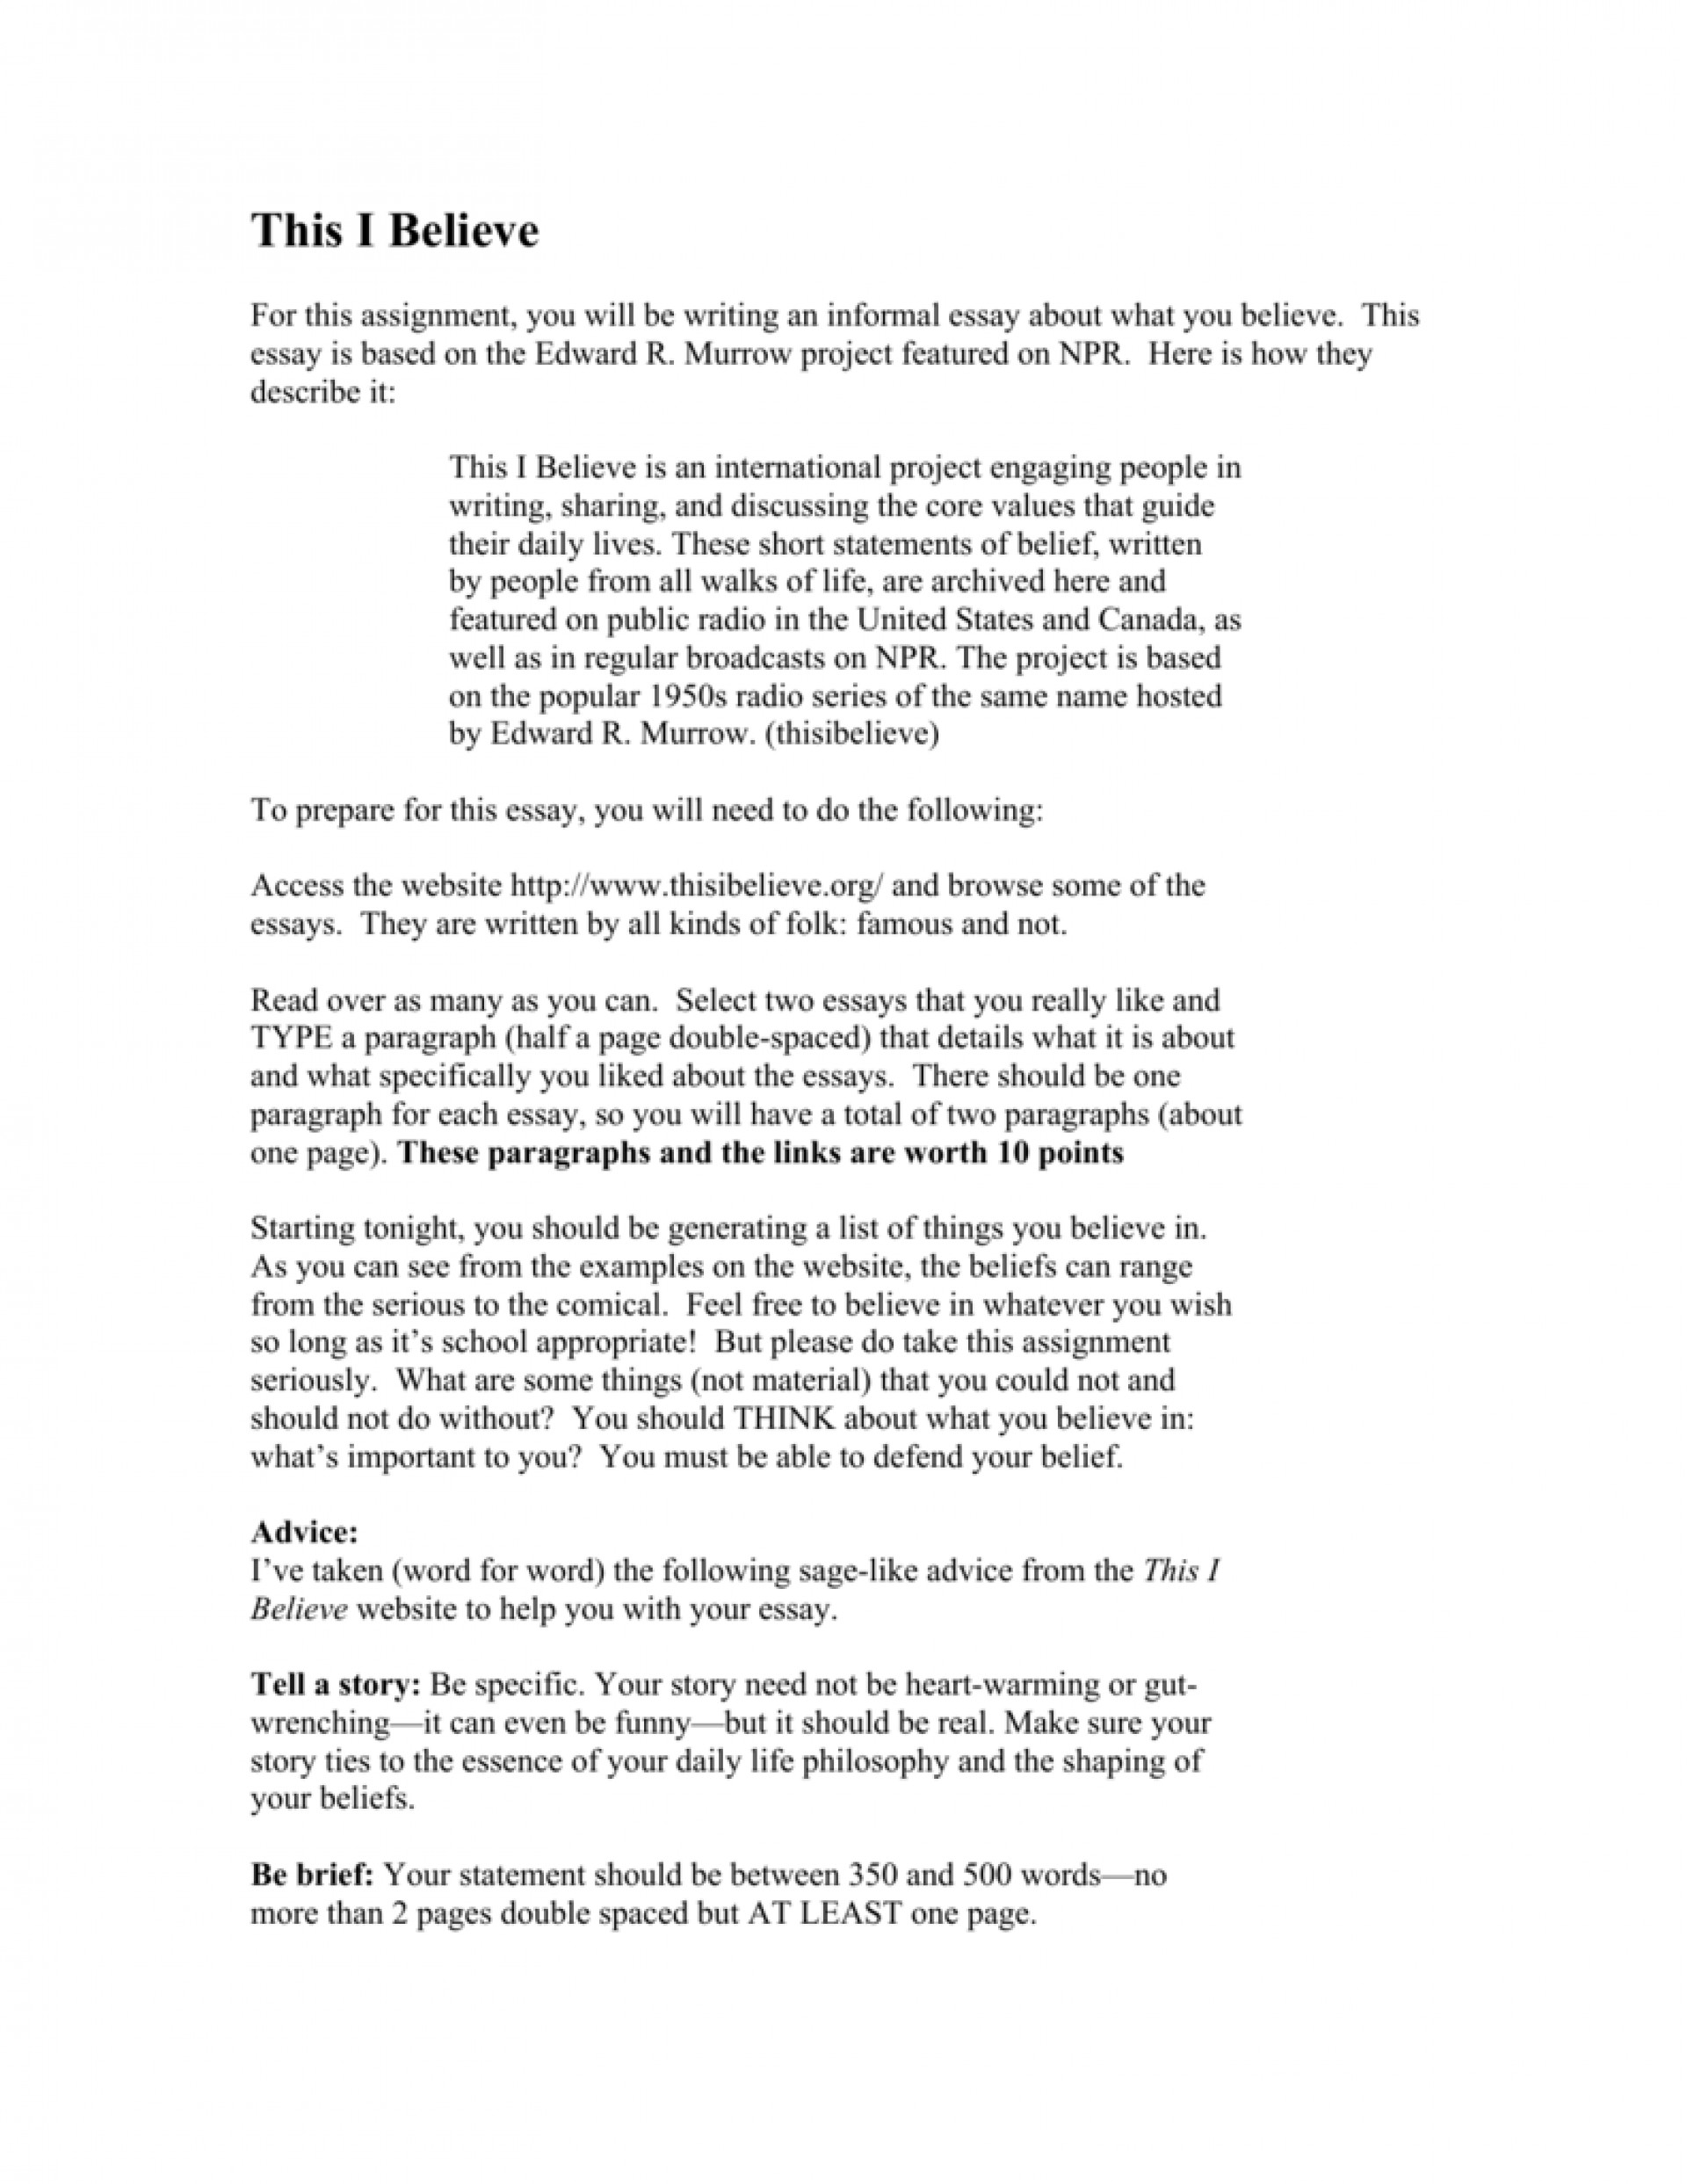 009 Essay Example 008807220 1 I Belive Surprising Essays Believe About Sports Ideas 1920